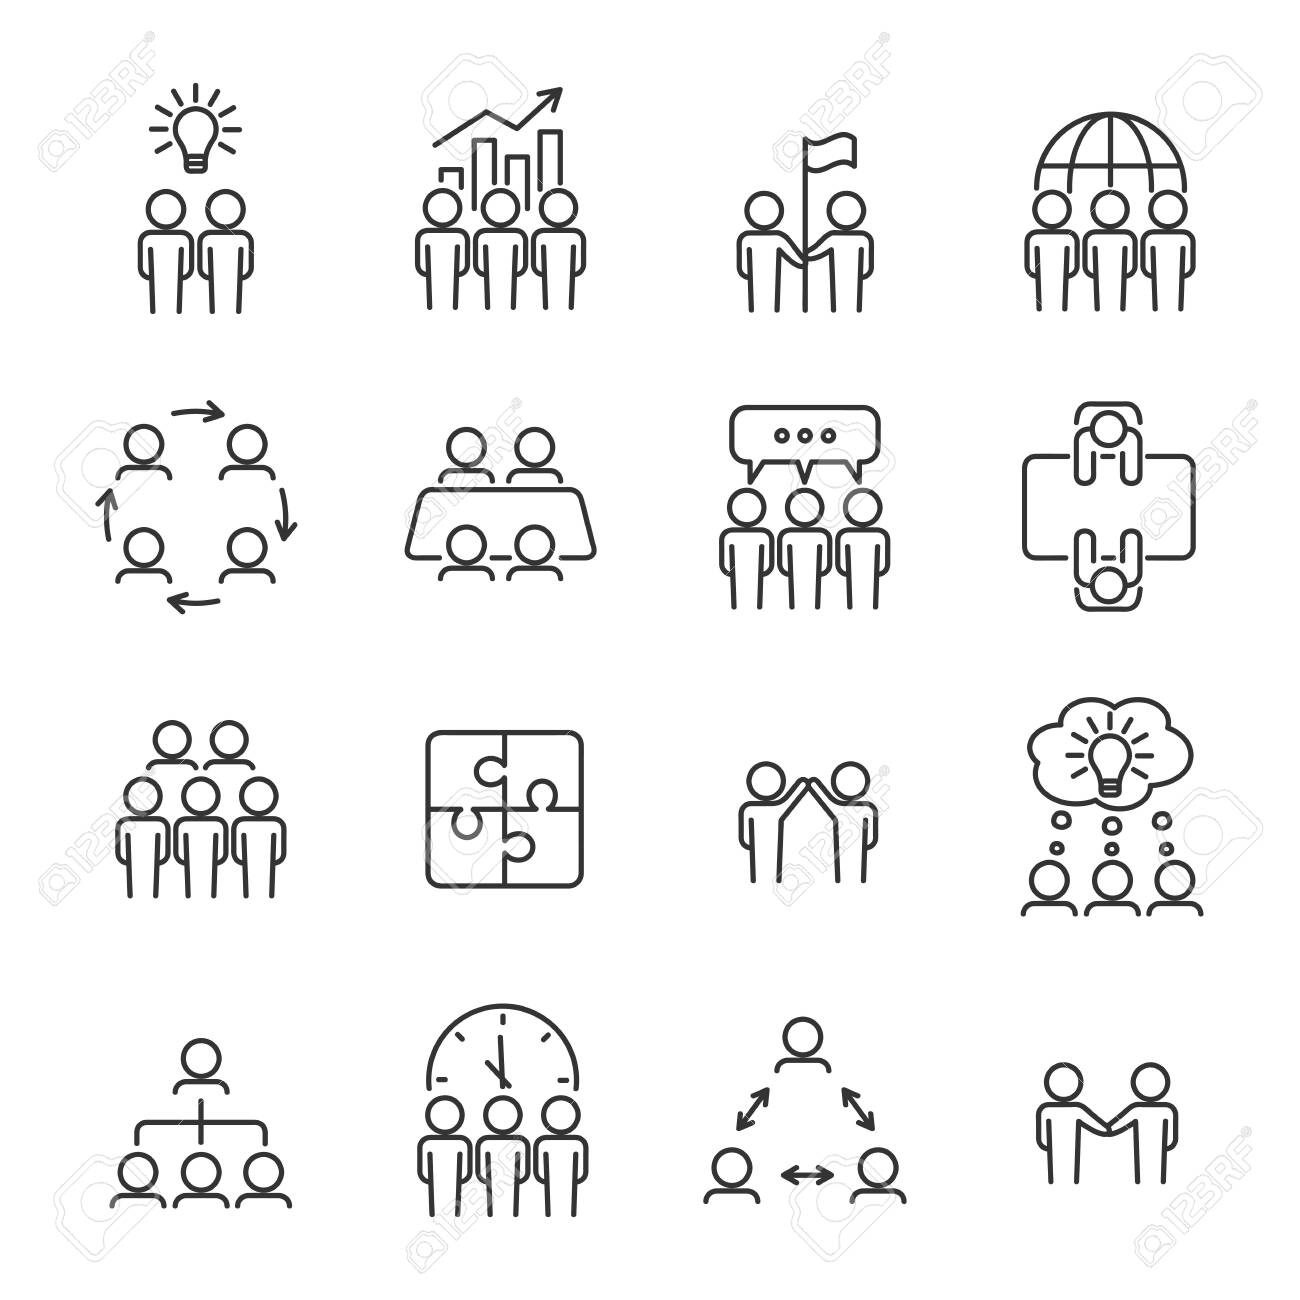 Simple teamwork line icon set. Business team concept. Management, meeting, planning, collaboration icons. Editable stroke. Vector illustration. - 136543500